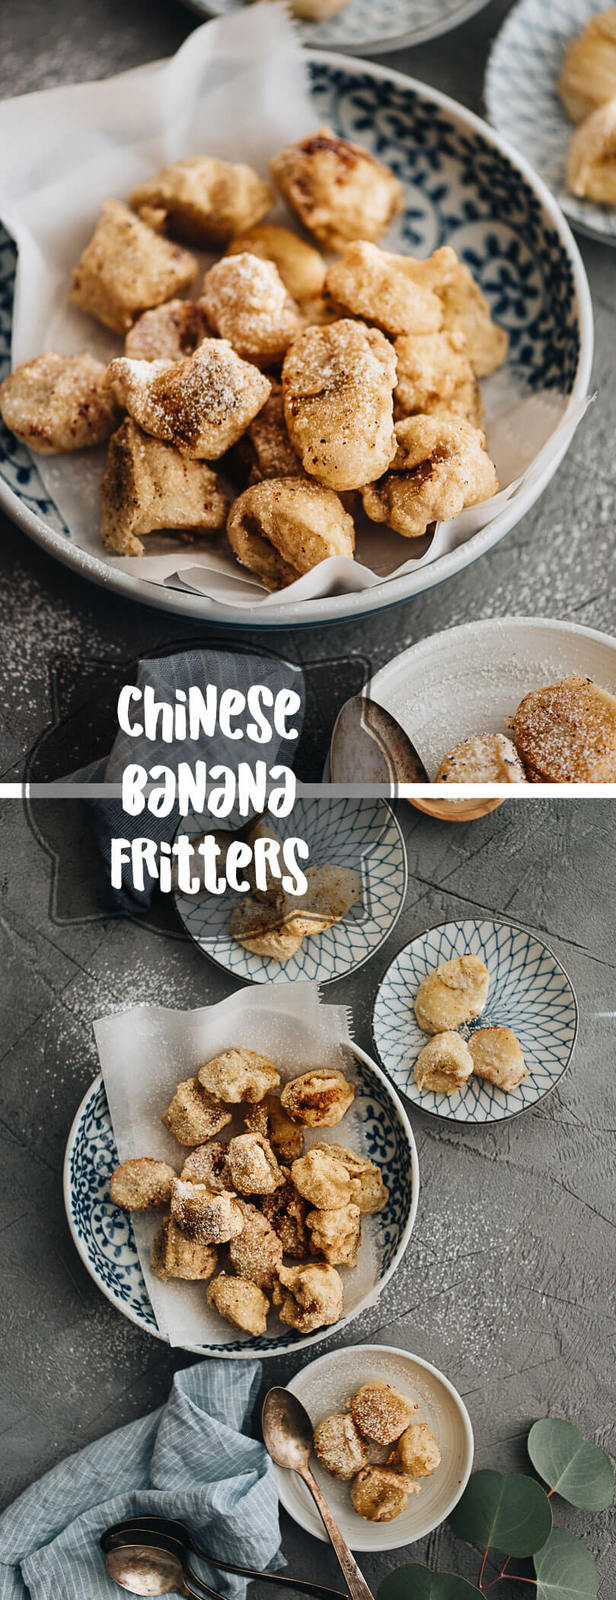 A lighter Asian-style banana fritter that is less calorie-dense and still satisfies your sweet tooth. {Vegan Adaptable}